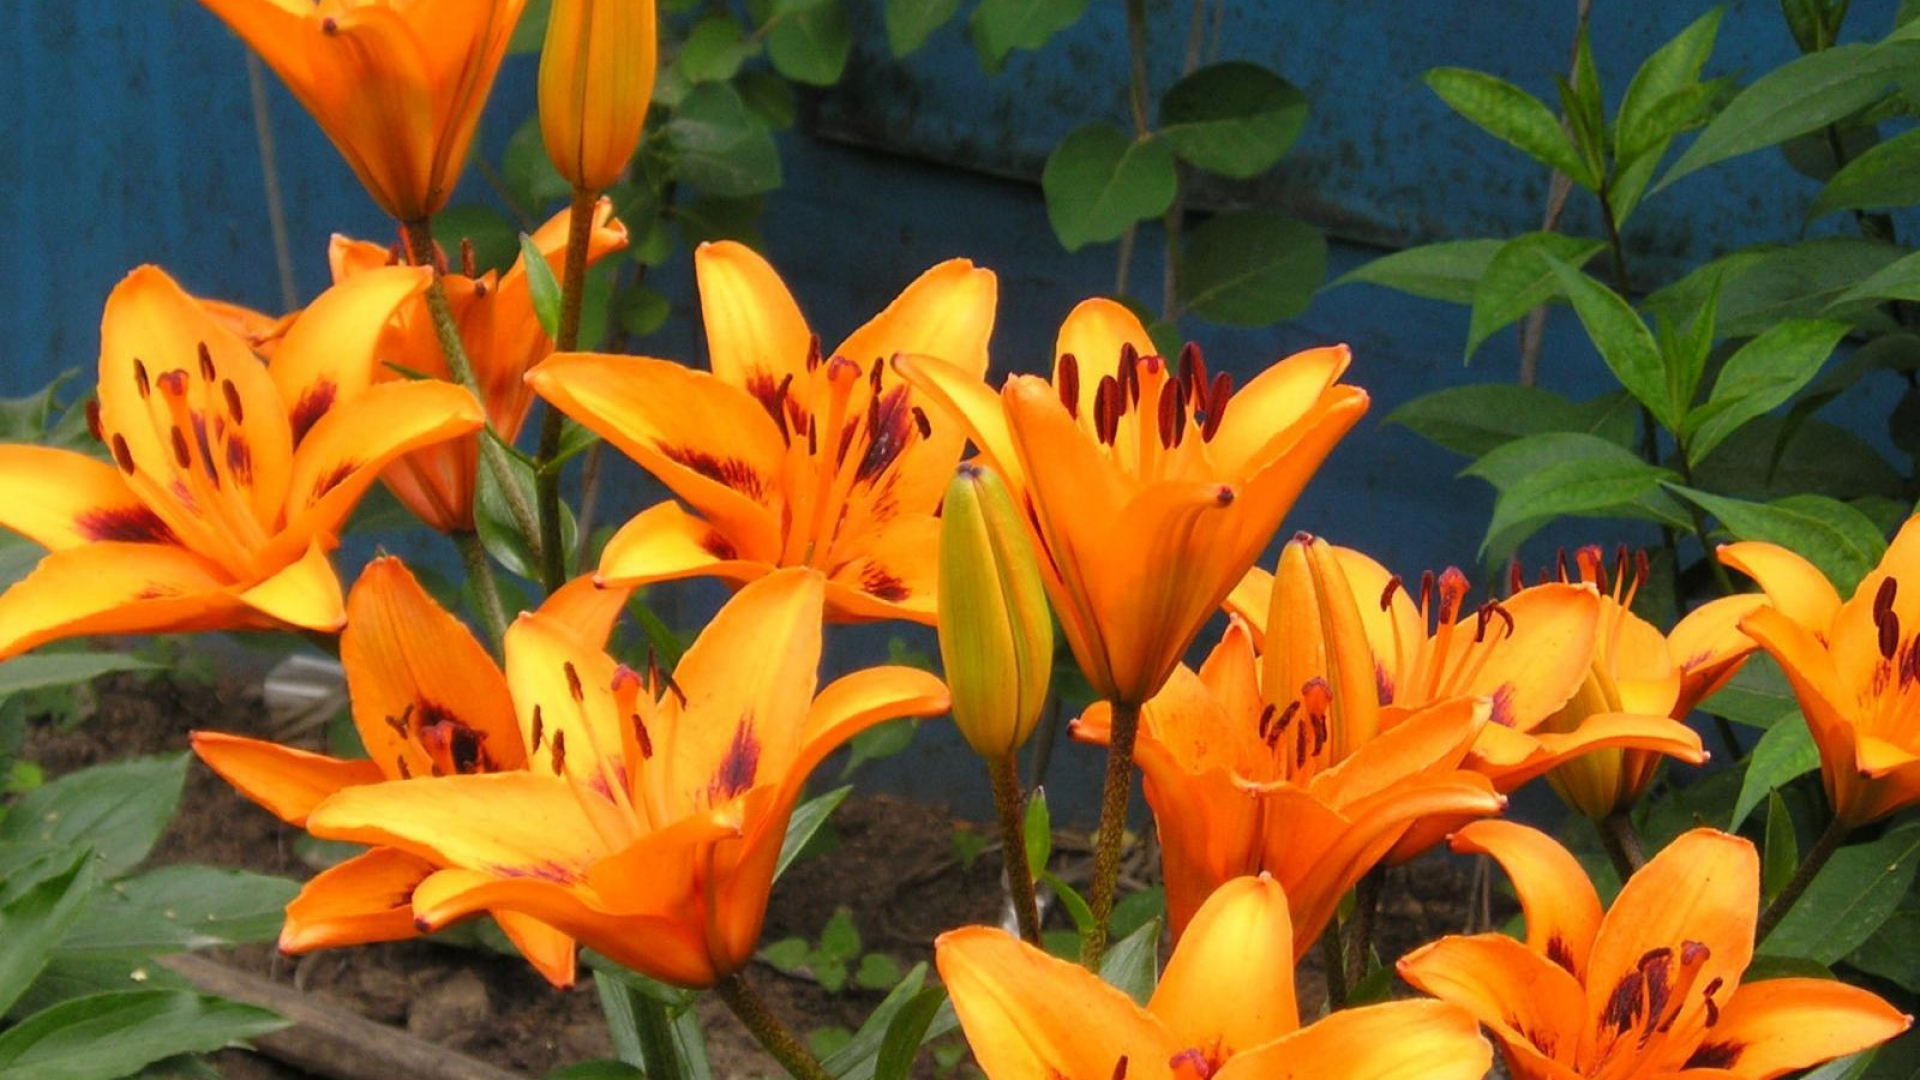 Download wallpaper 1920x1080 lily flower flowerbed park green get the latest lily flower flowerbed news pictures and videos and learn all about lily flower flowerbed from wallpapers4u your wallpaper news izmirmasajfo